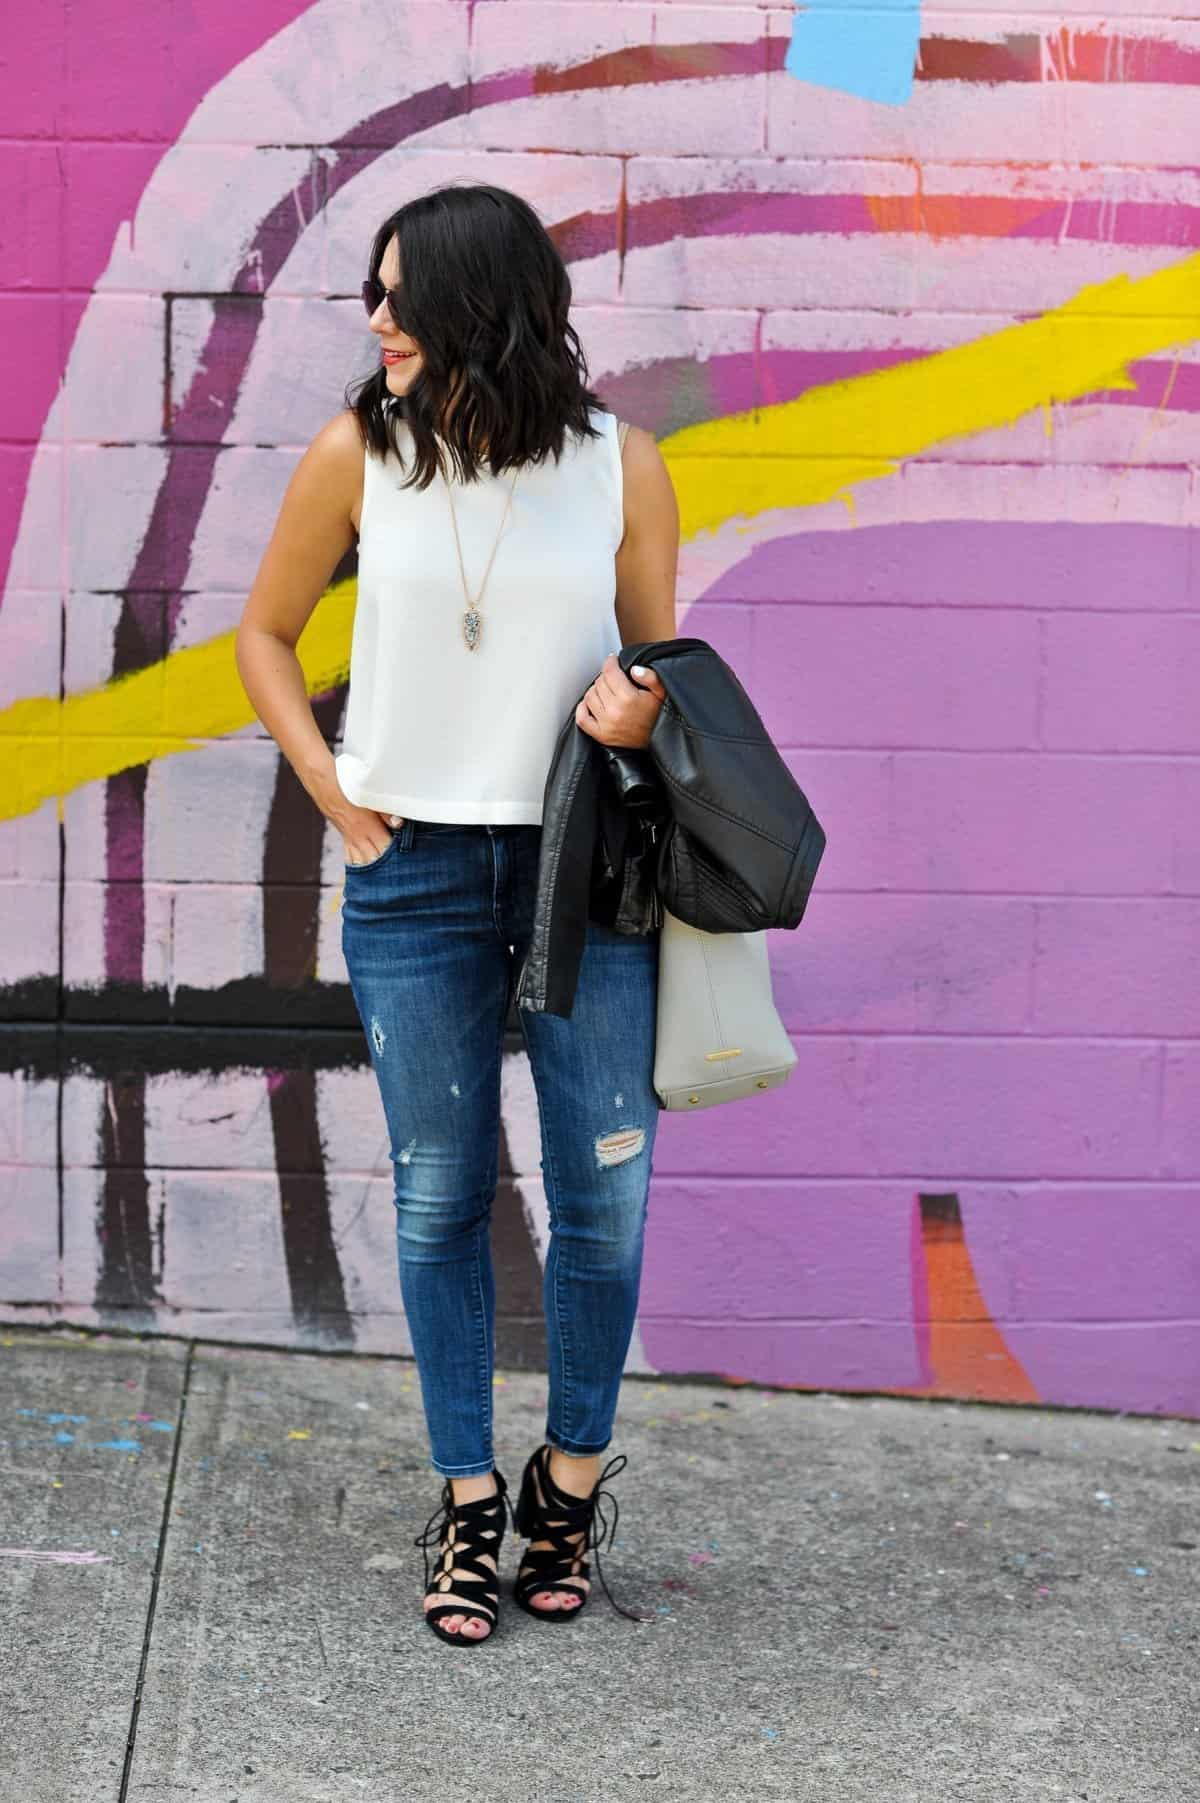 black and white outfit ideas, date night outfit ideas - My Style Vita @mystylevita